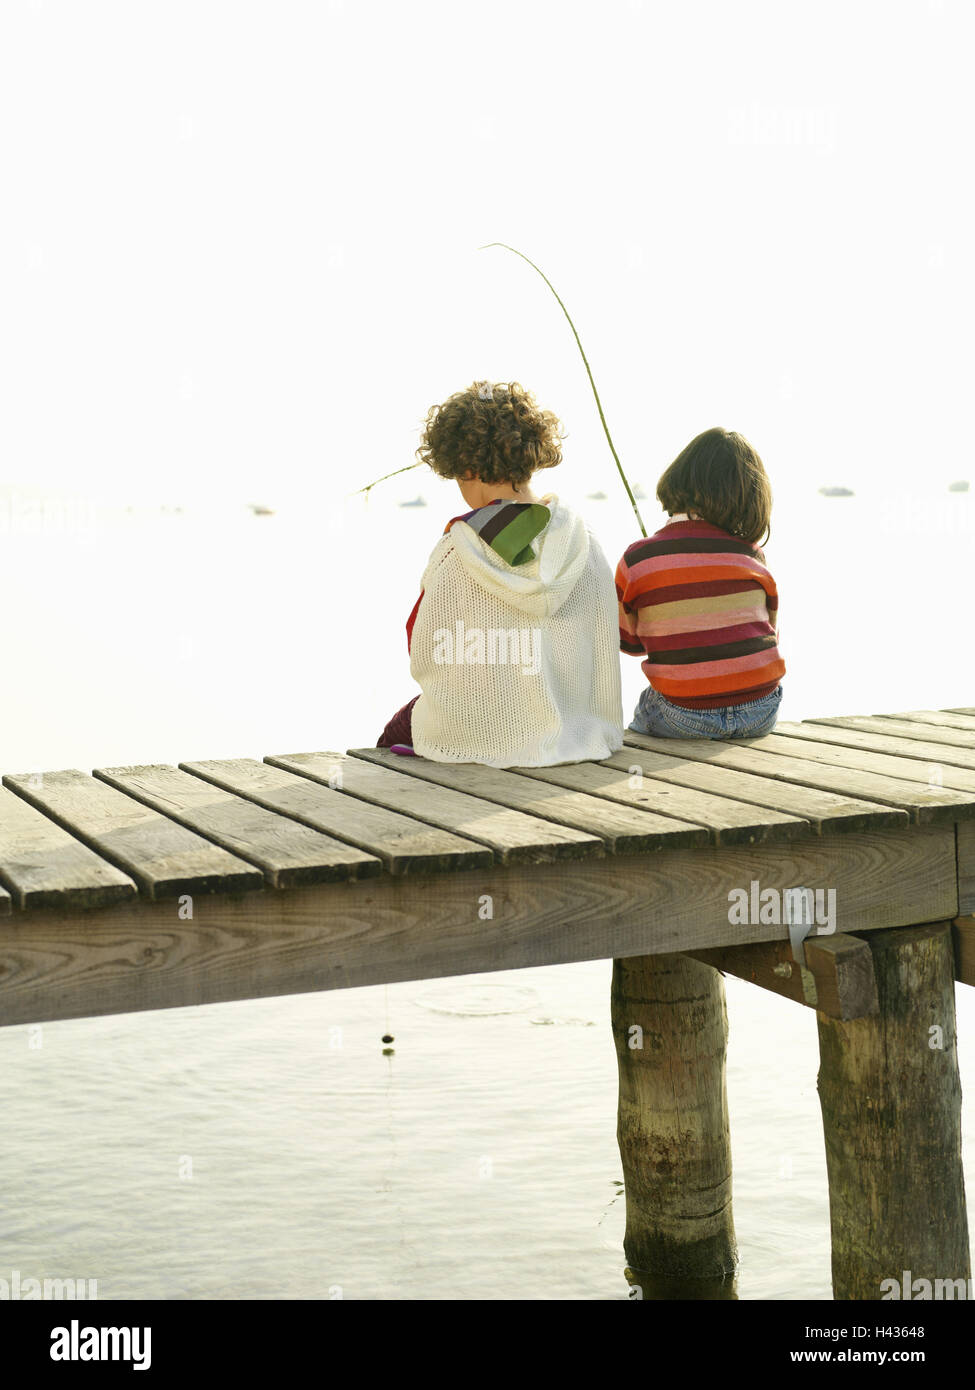 Lakes, bridge, children, girls, sit, fish side by side, back view, waters, wooden jetty, water, leisure time, holidays, - Stock Image